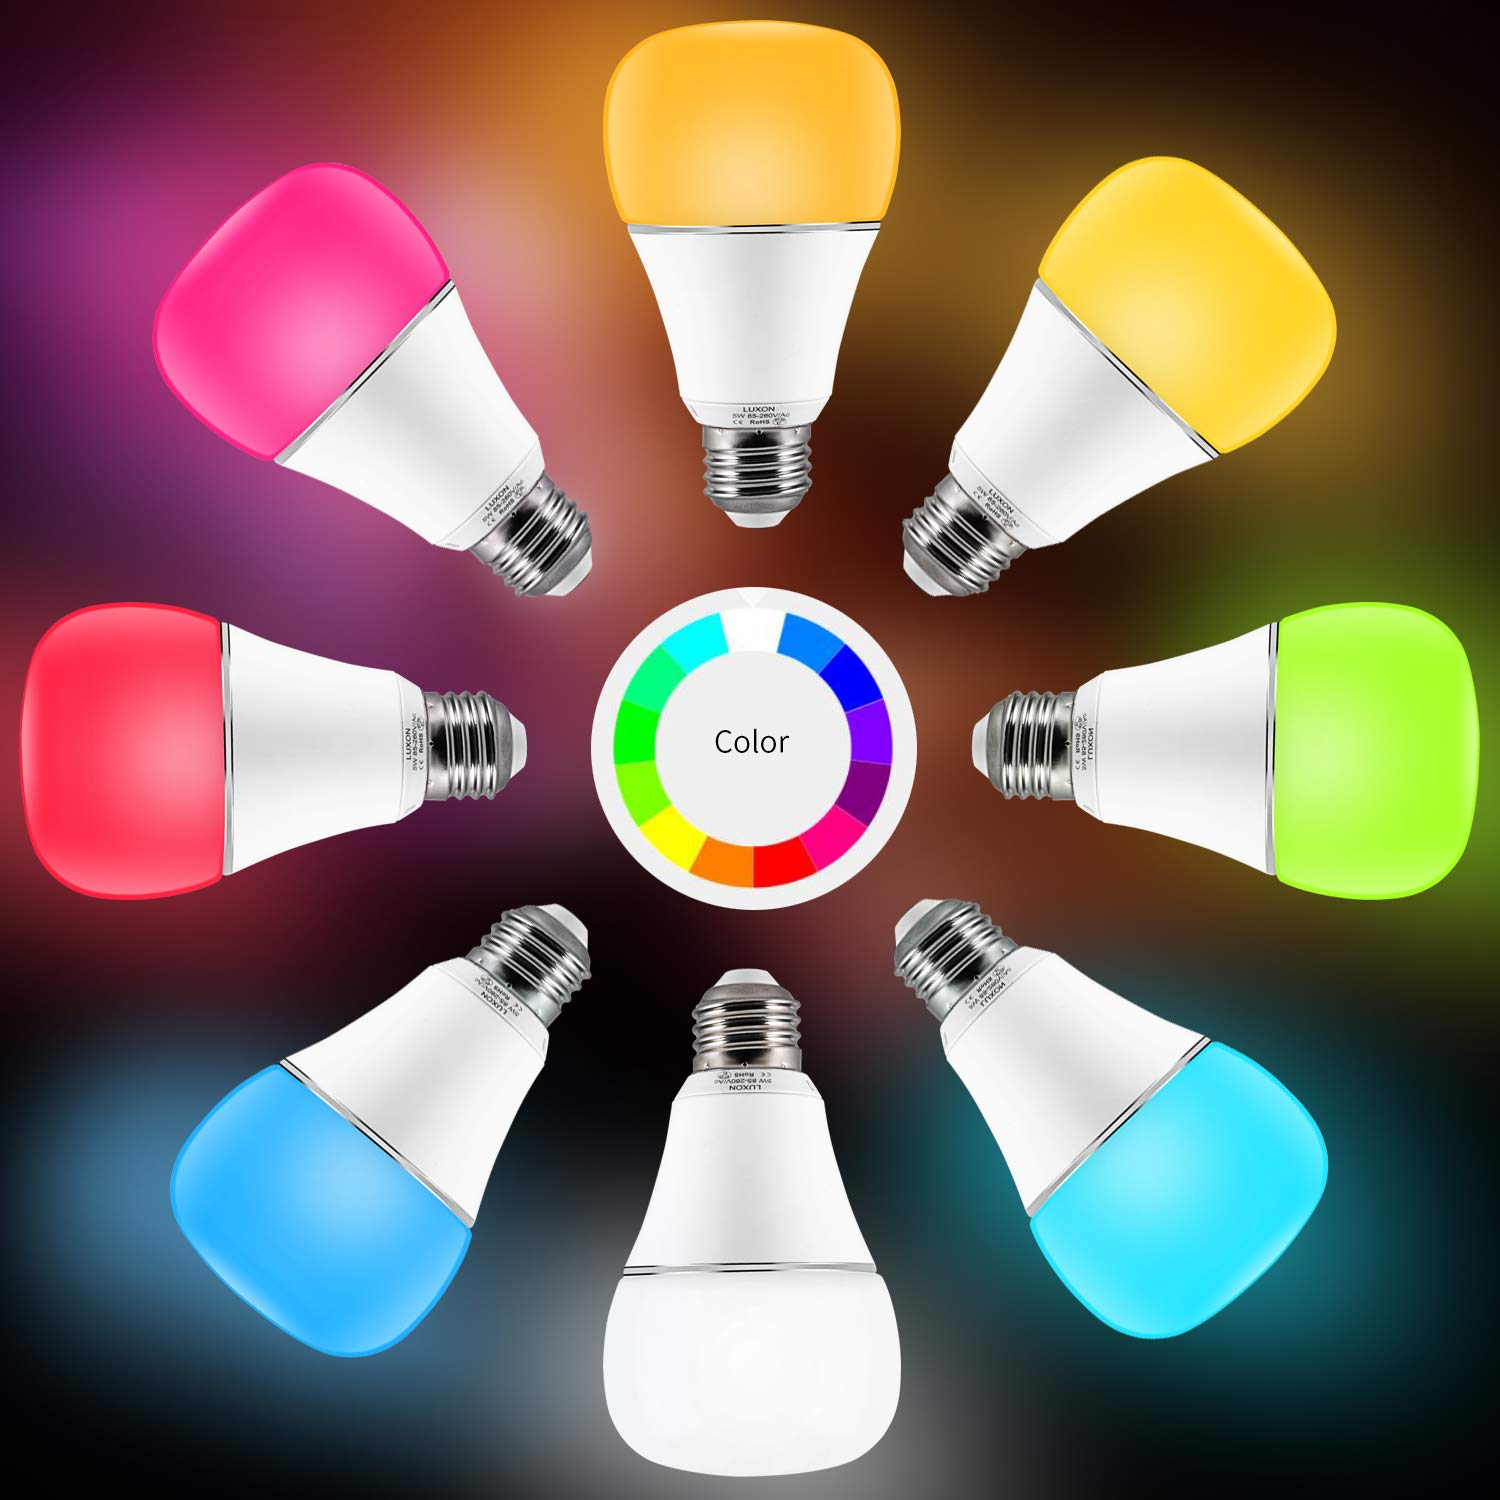 Smart WI-FI LED Light Bulb RGBW Color Changing E26 Base Smart Dimmable Light Bulb Smartphone Controlled Work with Amazon Alexa/ Google Home by LUXON by LUXON (Image #3)